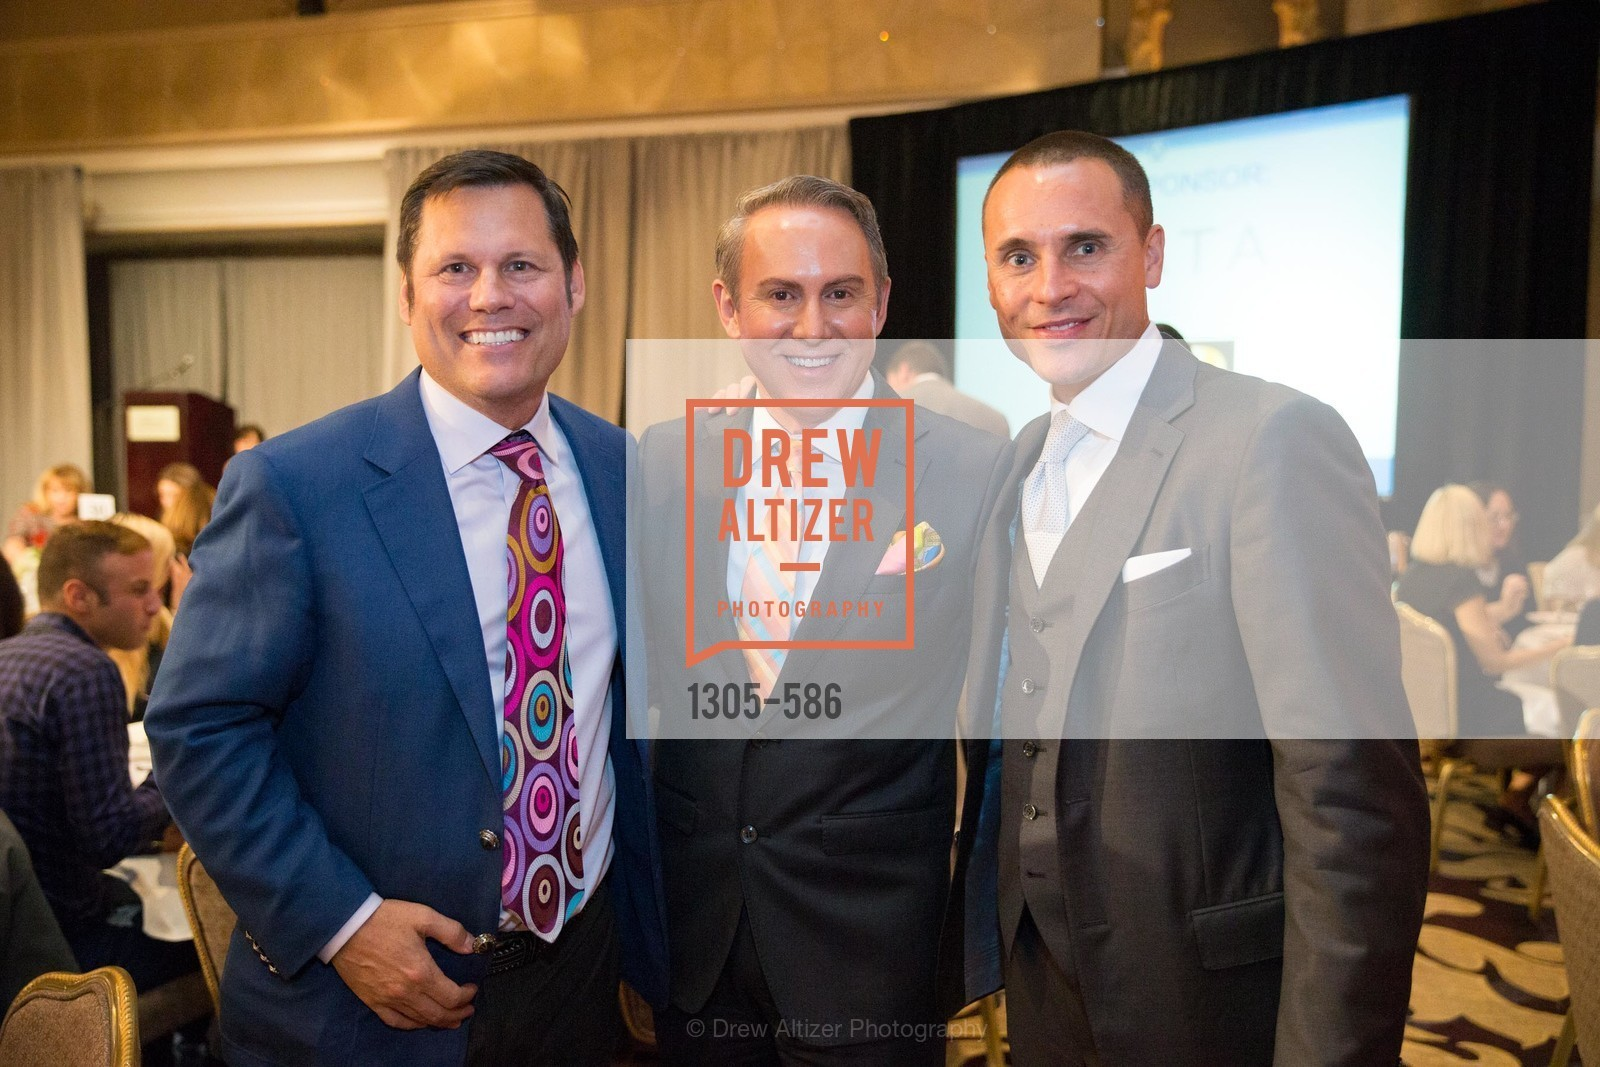 Mark Calvano, Joel Goodrich, Jeff Garelick, 2014 Bay Area ARTHRITIS AUXILLIARY Benefit & Fashion Show, US, October 2nd, 2014,Drew Altizer, Drew Altizer Photography, full-service agency, private events, San Francisco photographer, photographer california